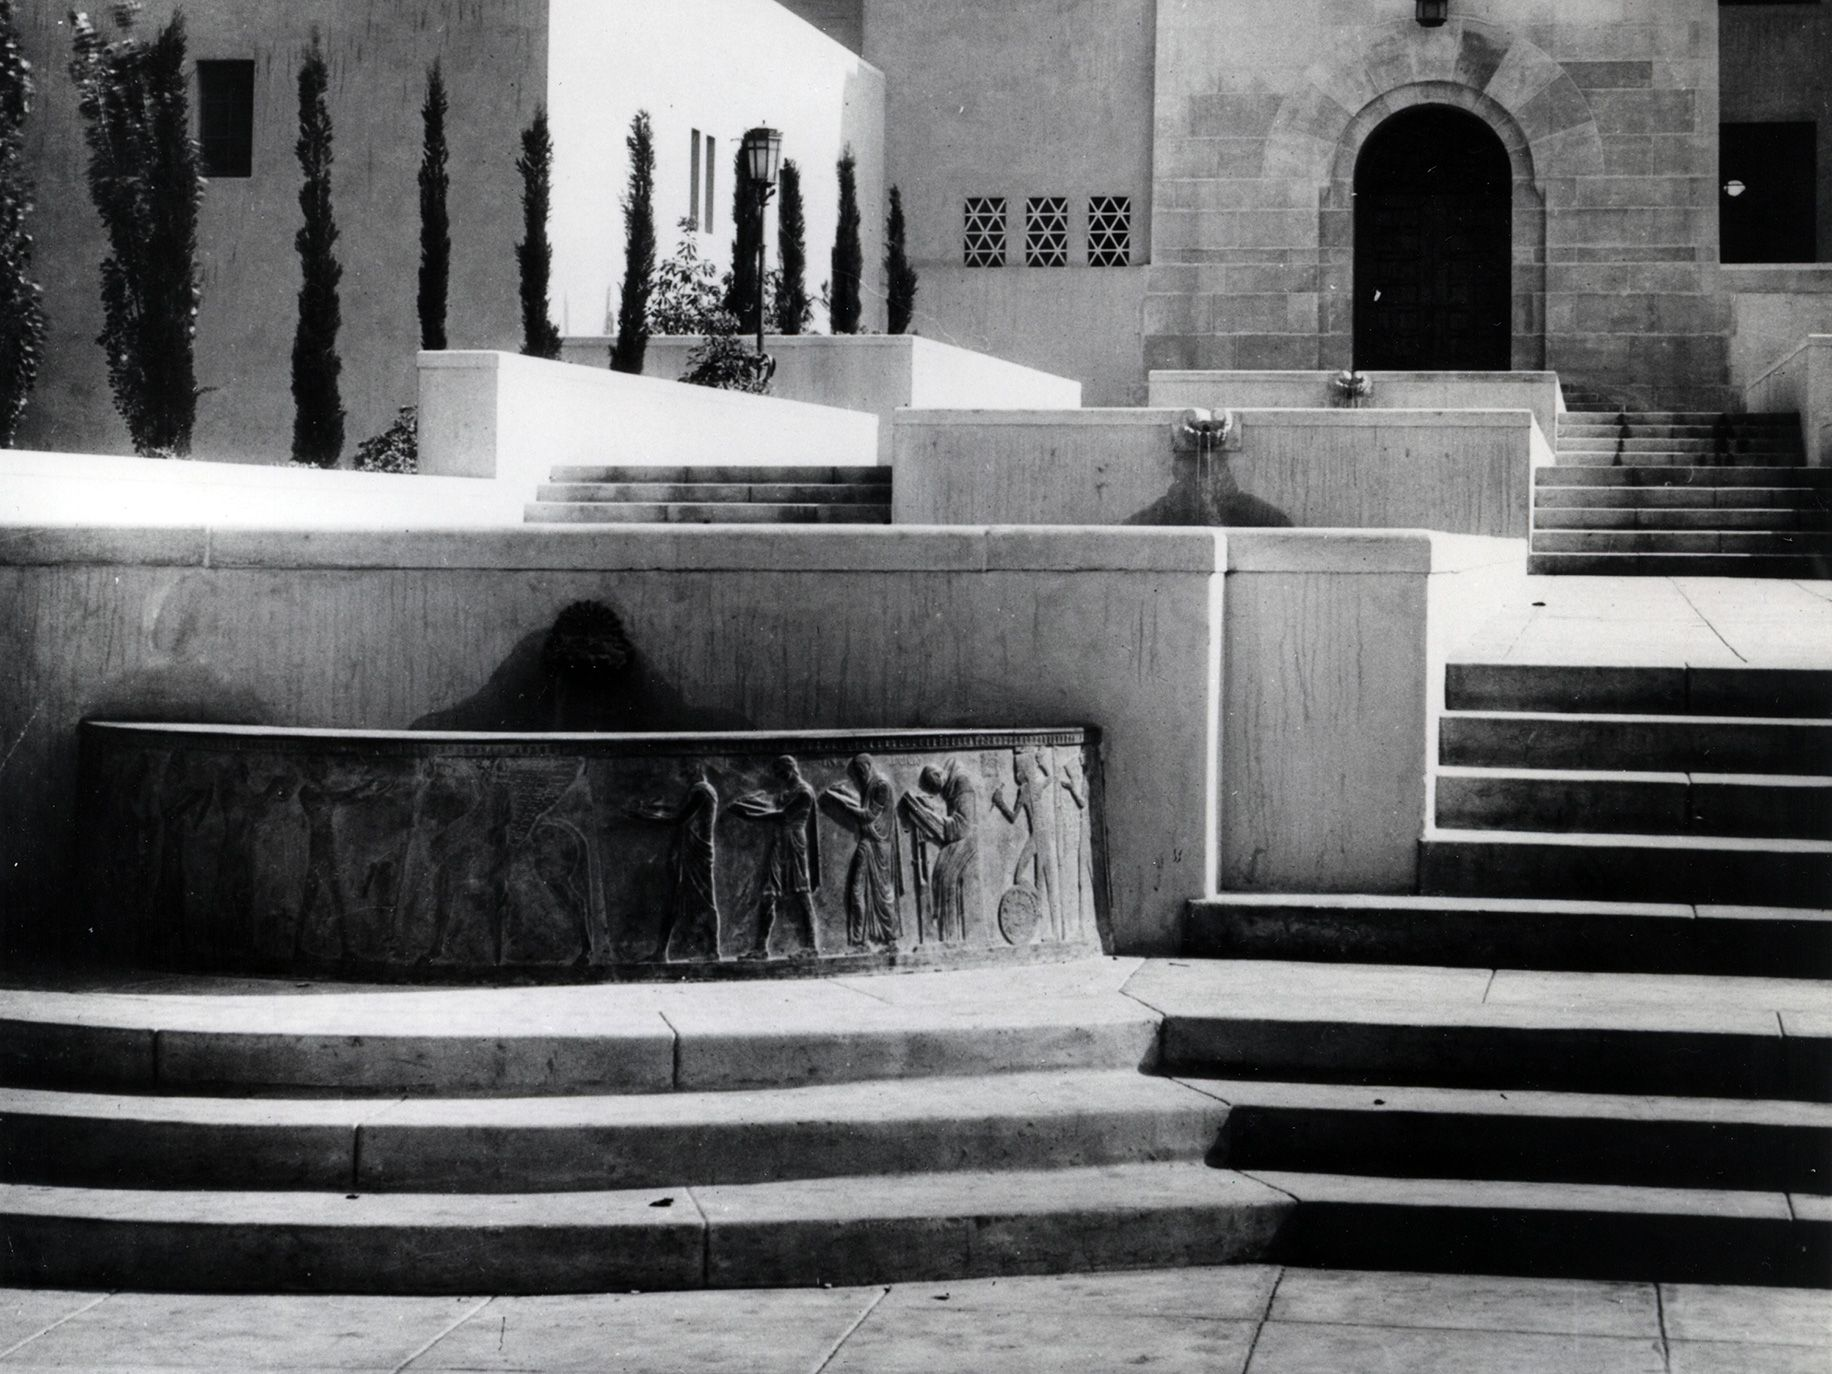 The Well of the Scribes before it was removed from the outside of the Los Angeles Public Library.